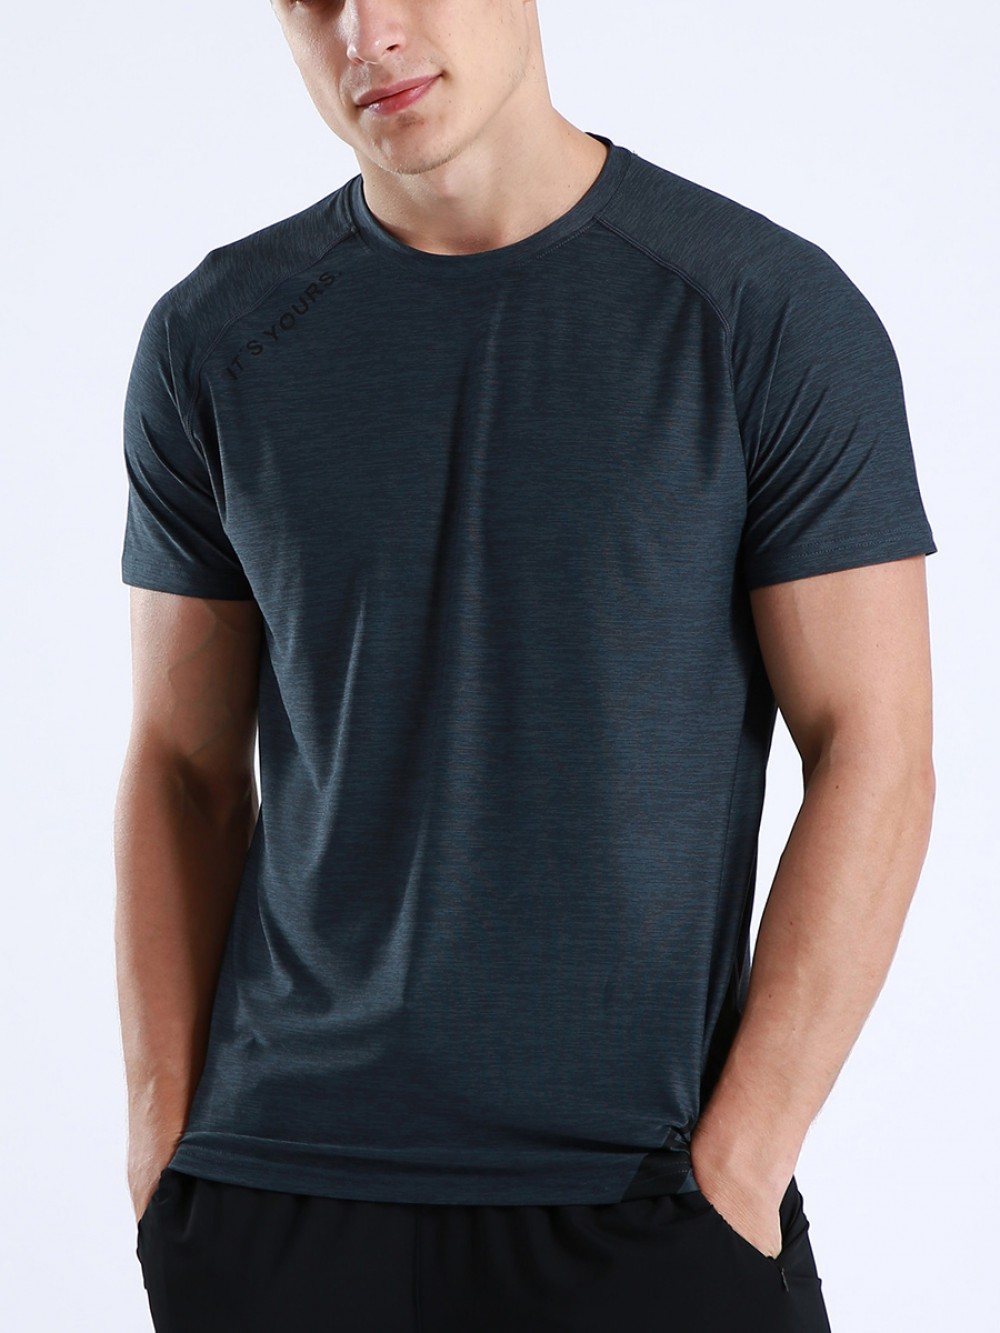 Comfortable Dark Gray Sports Top Short Sleeve Letter Paint For Boys